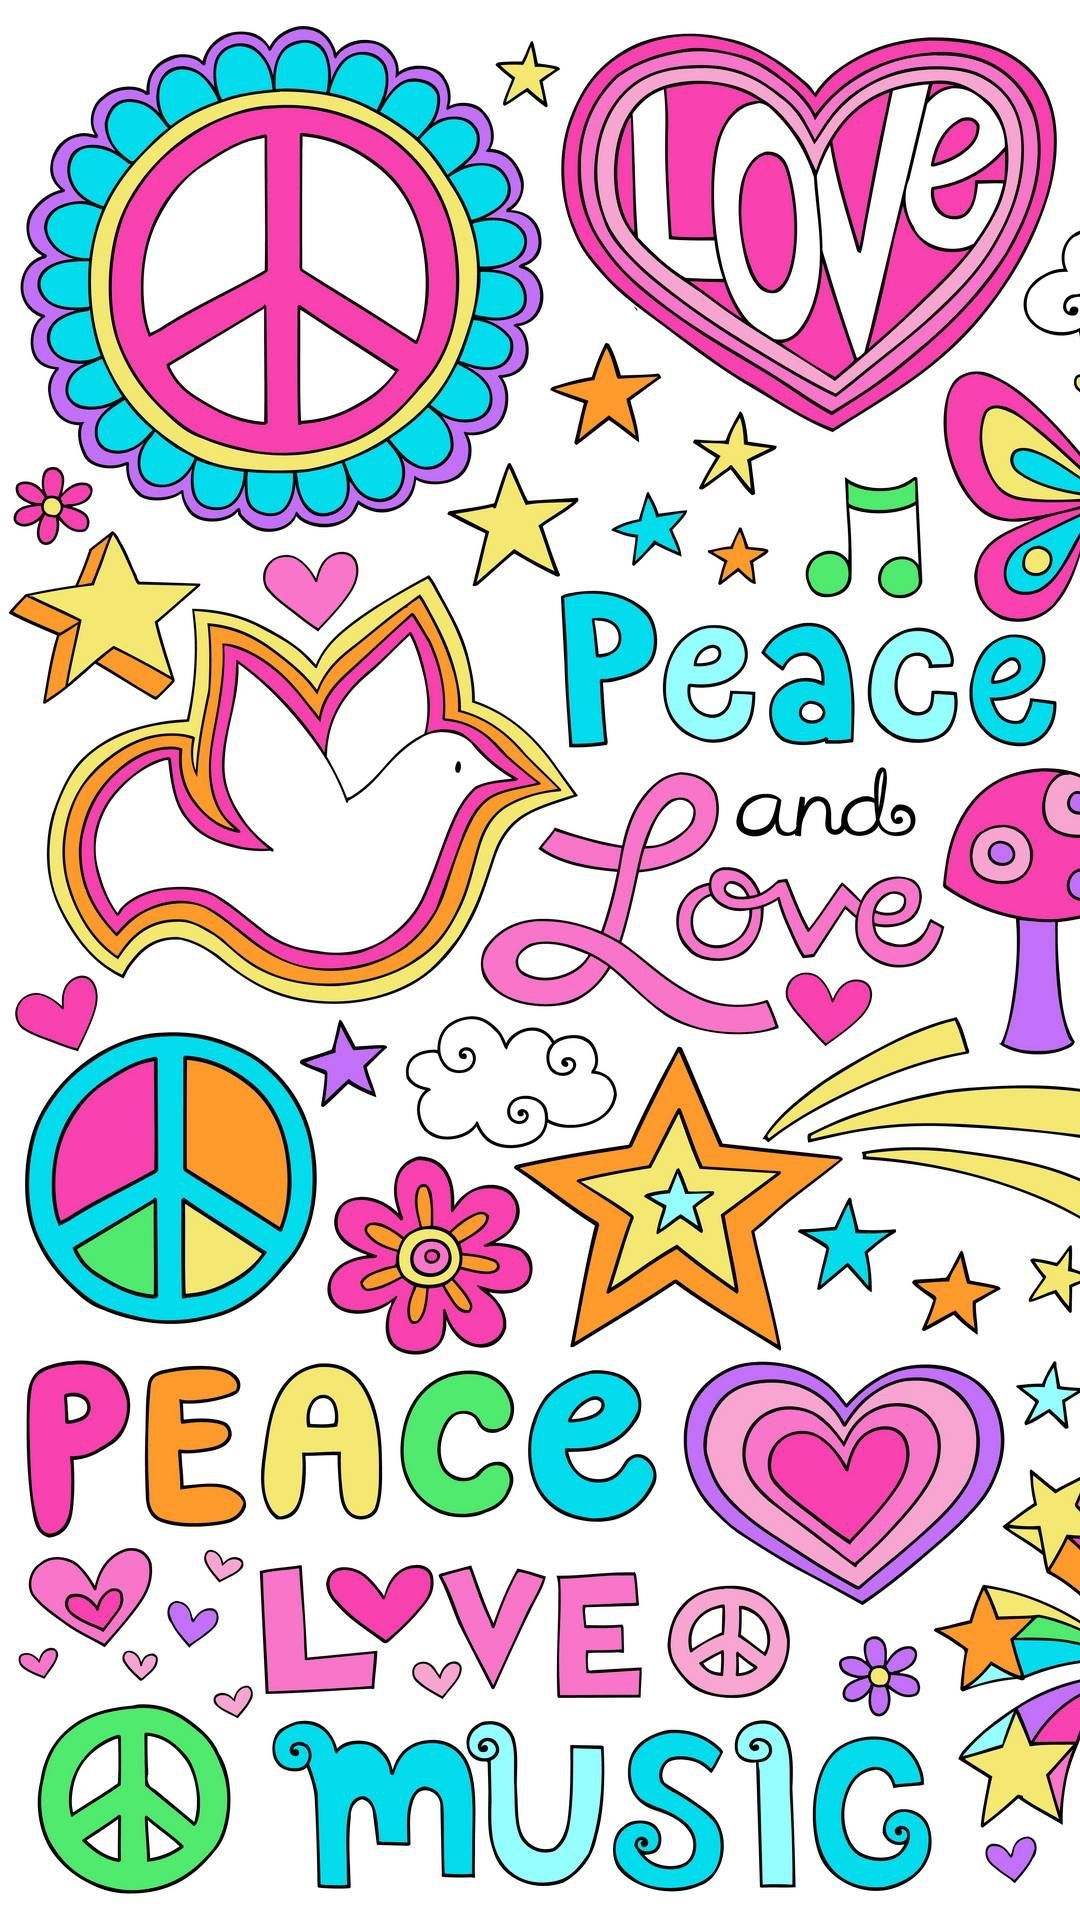 Pin by Mimi Monahan on PEACE Hippie wallpaper, Peace and